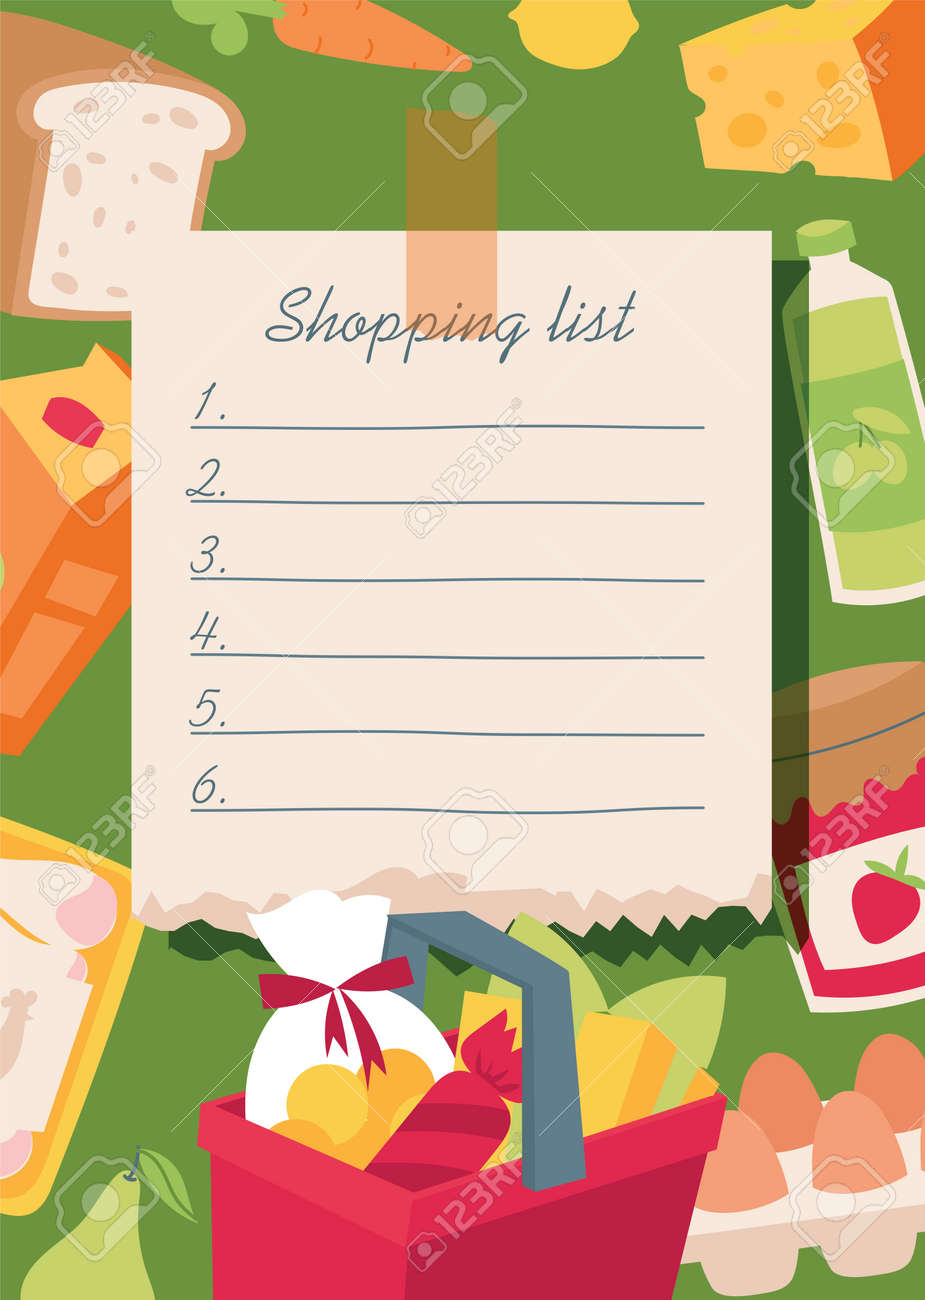 Shopping list vector illustration. Checklist food planning for market, everyday notebook with vegetables, basket, diary products, bread, juice, sausage, jam, egs, carrot milk cheese lemon - 126854323